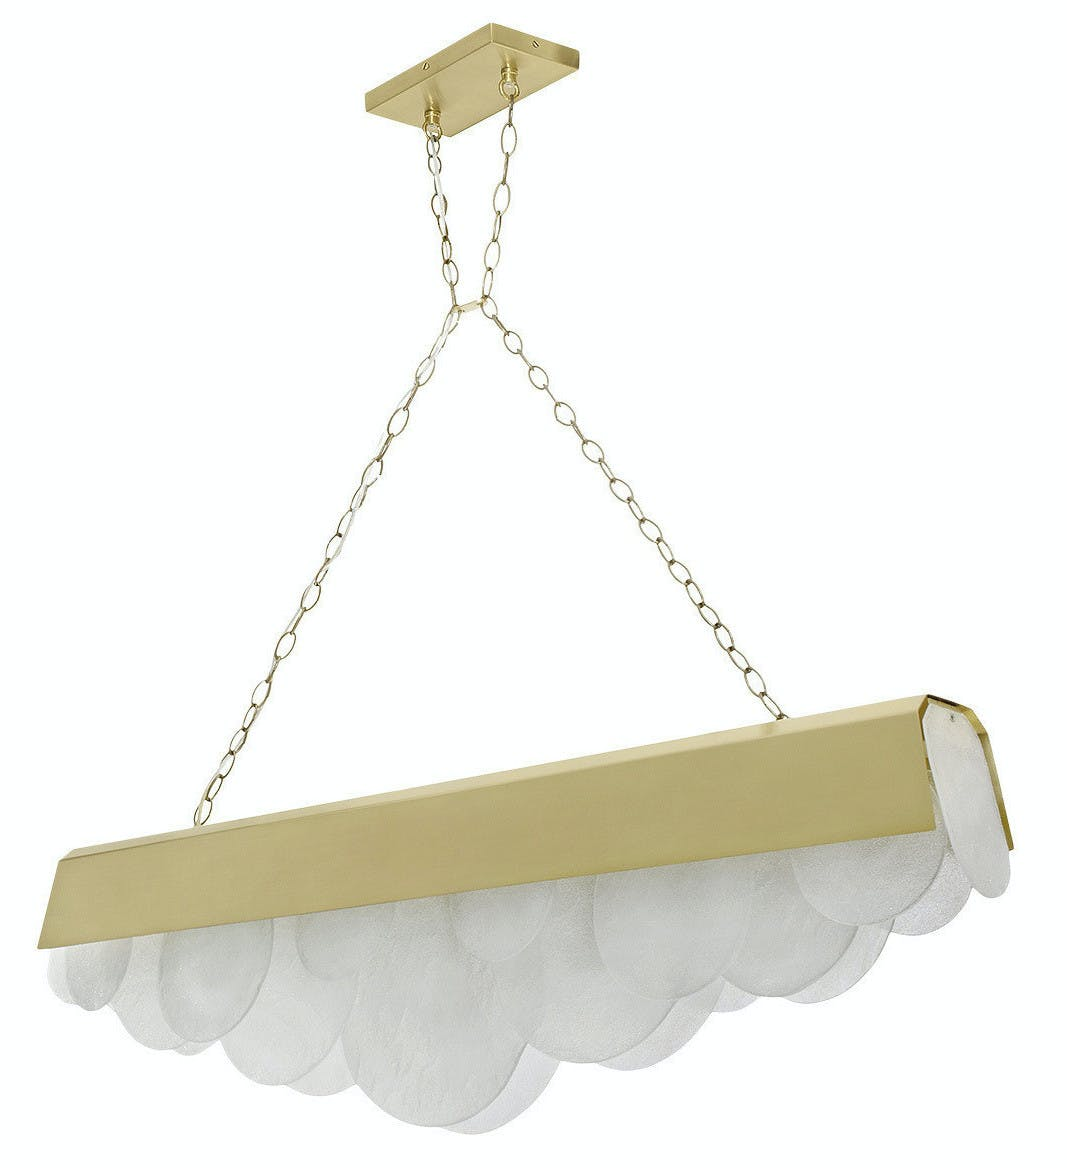 Cto-lighting-alto-hanging-haute-living_190425_161852